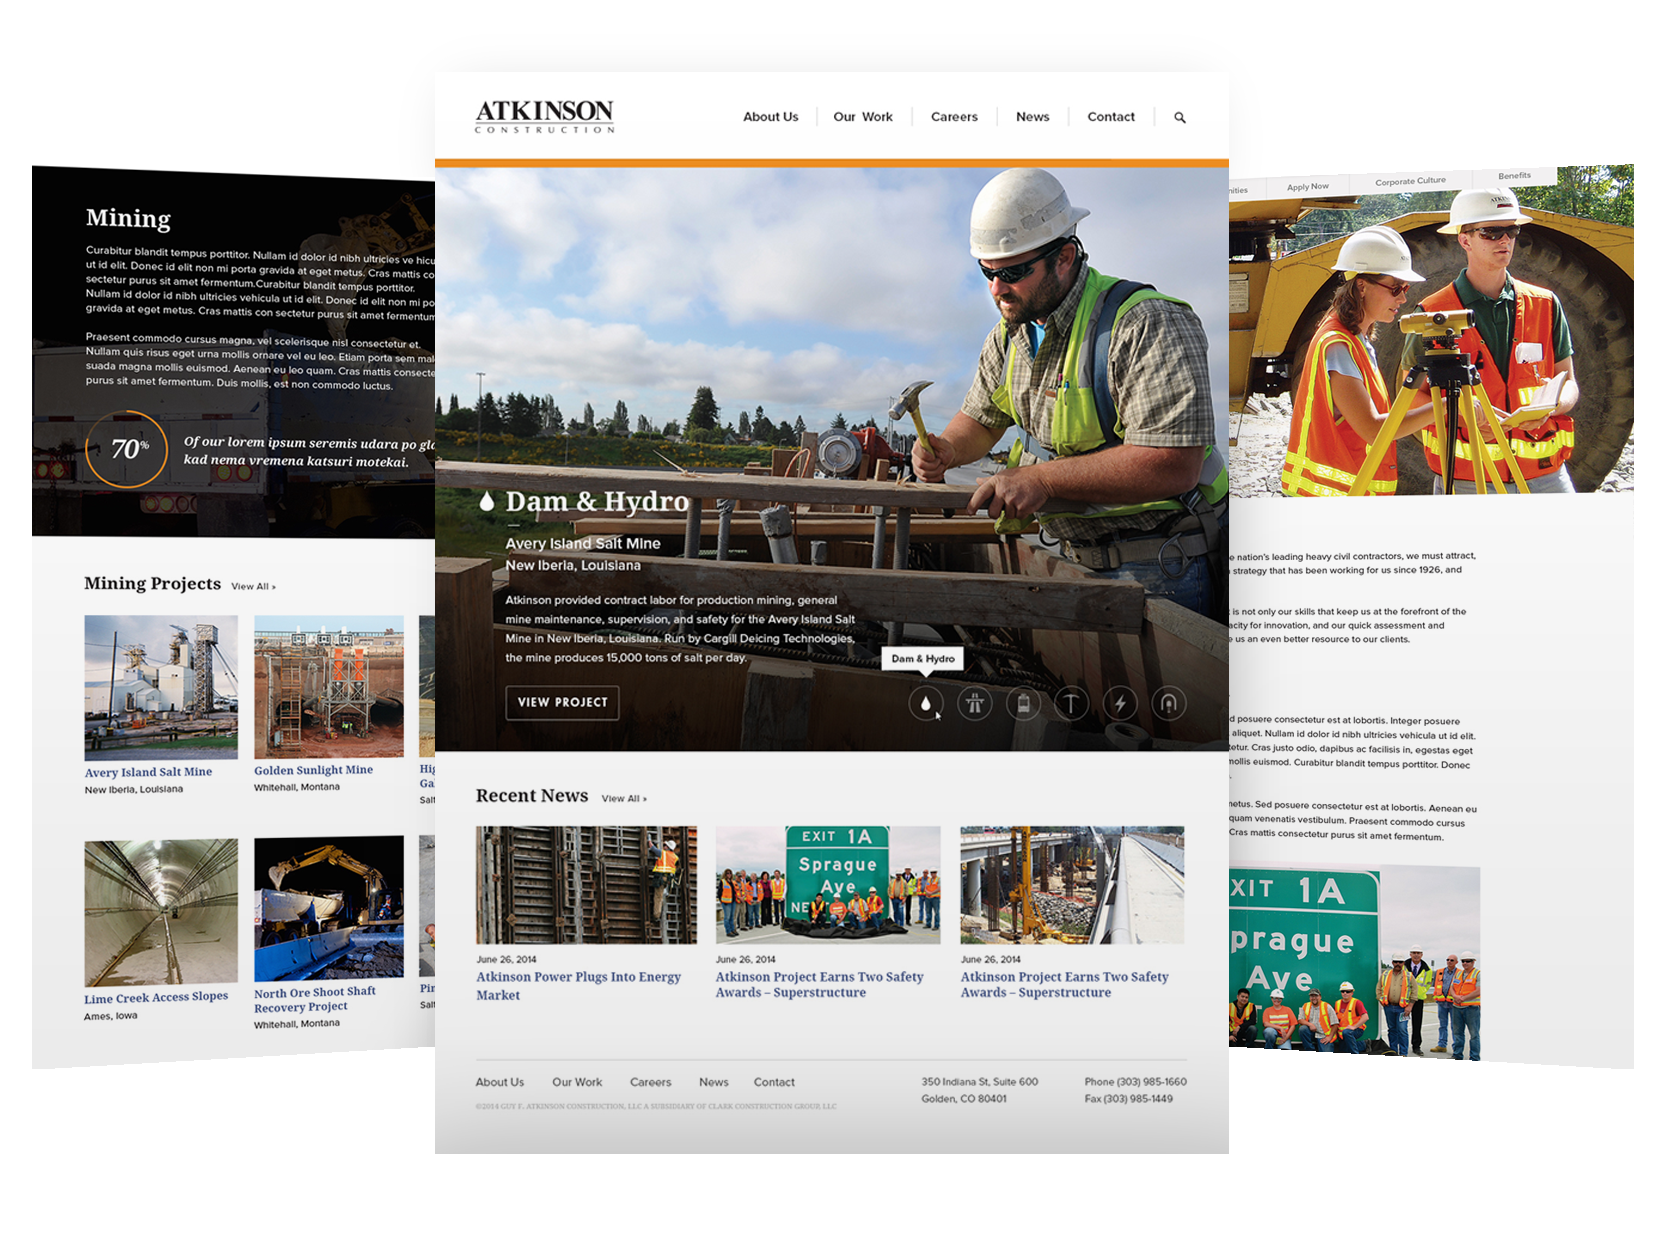 We worked with the Marylany based Clark Construction to redesign the Atkinson site.